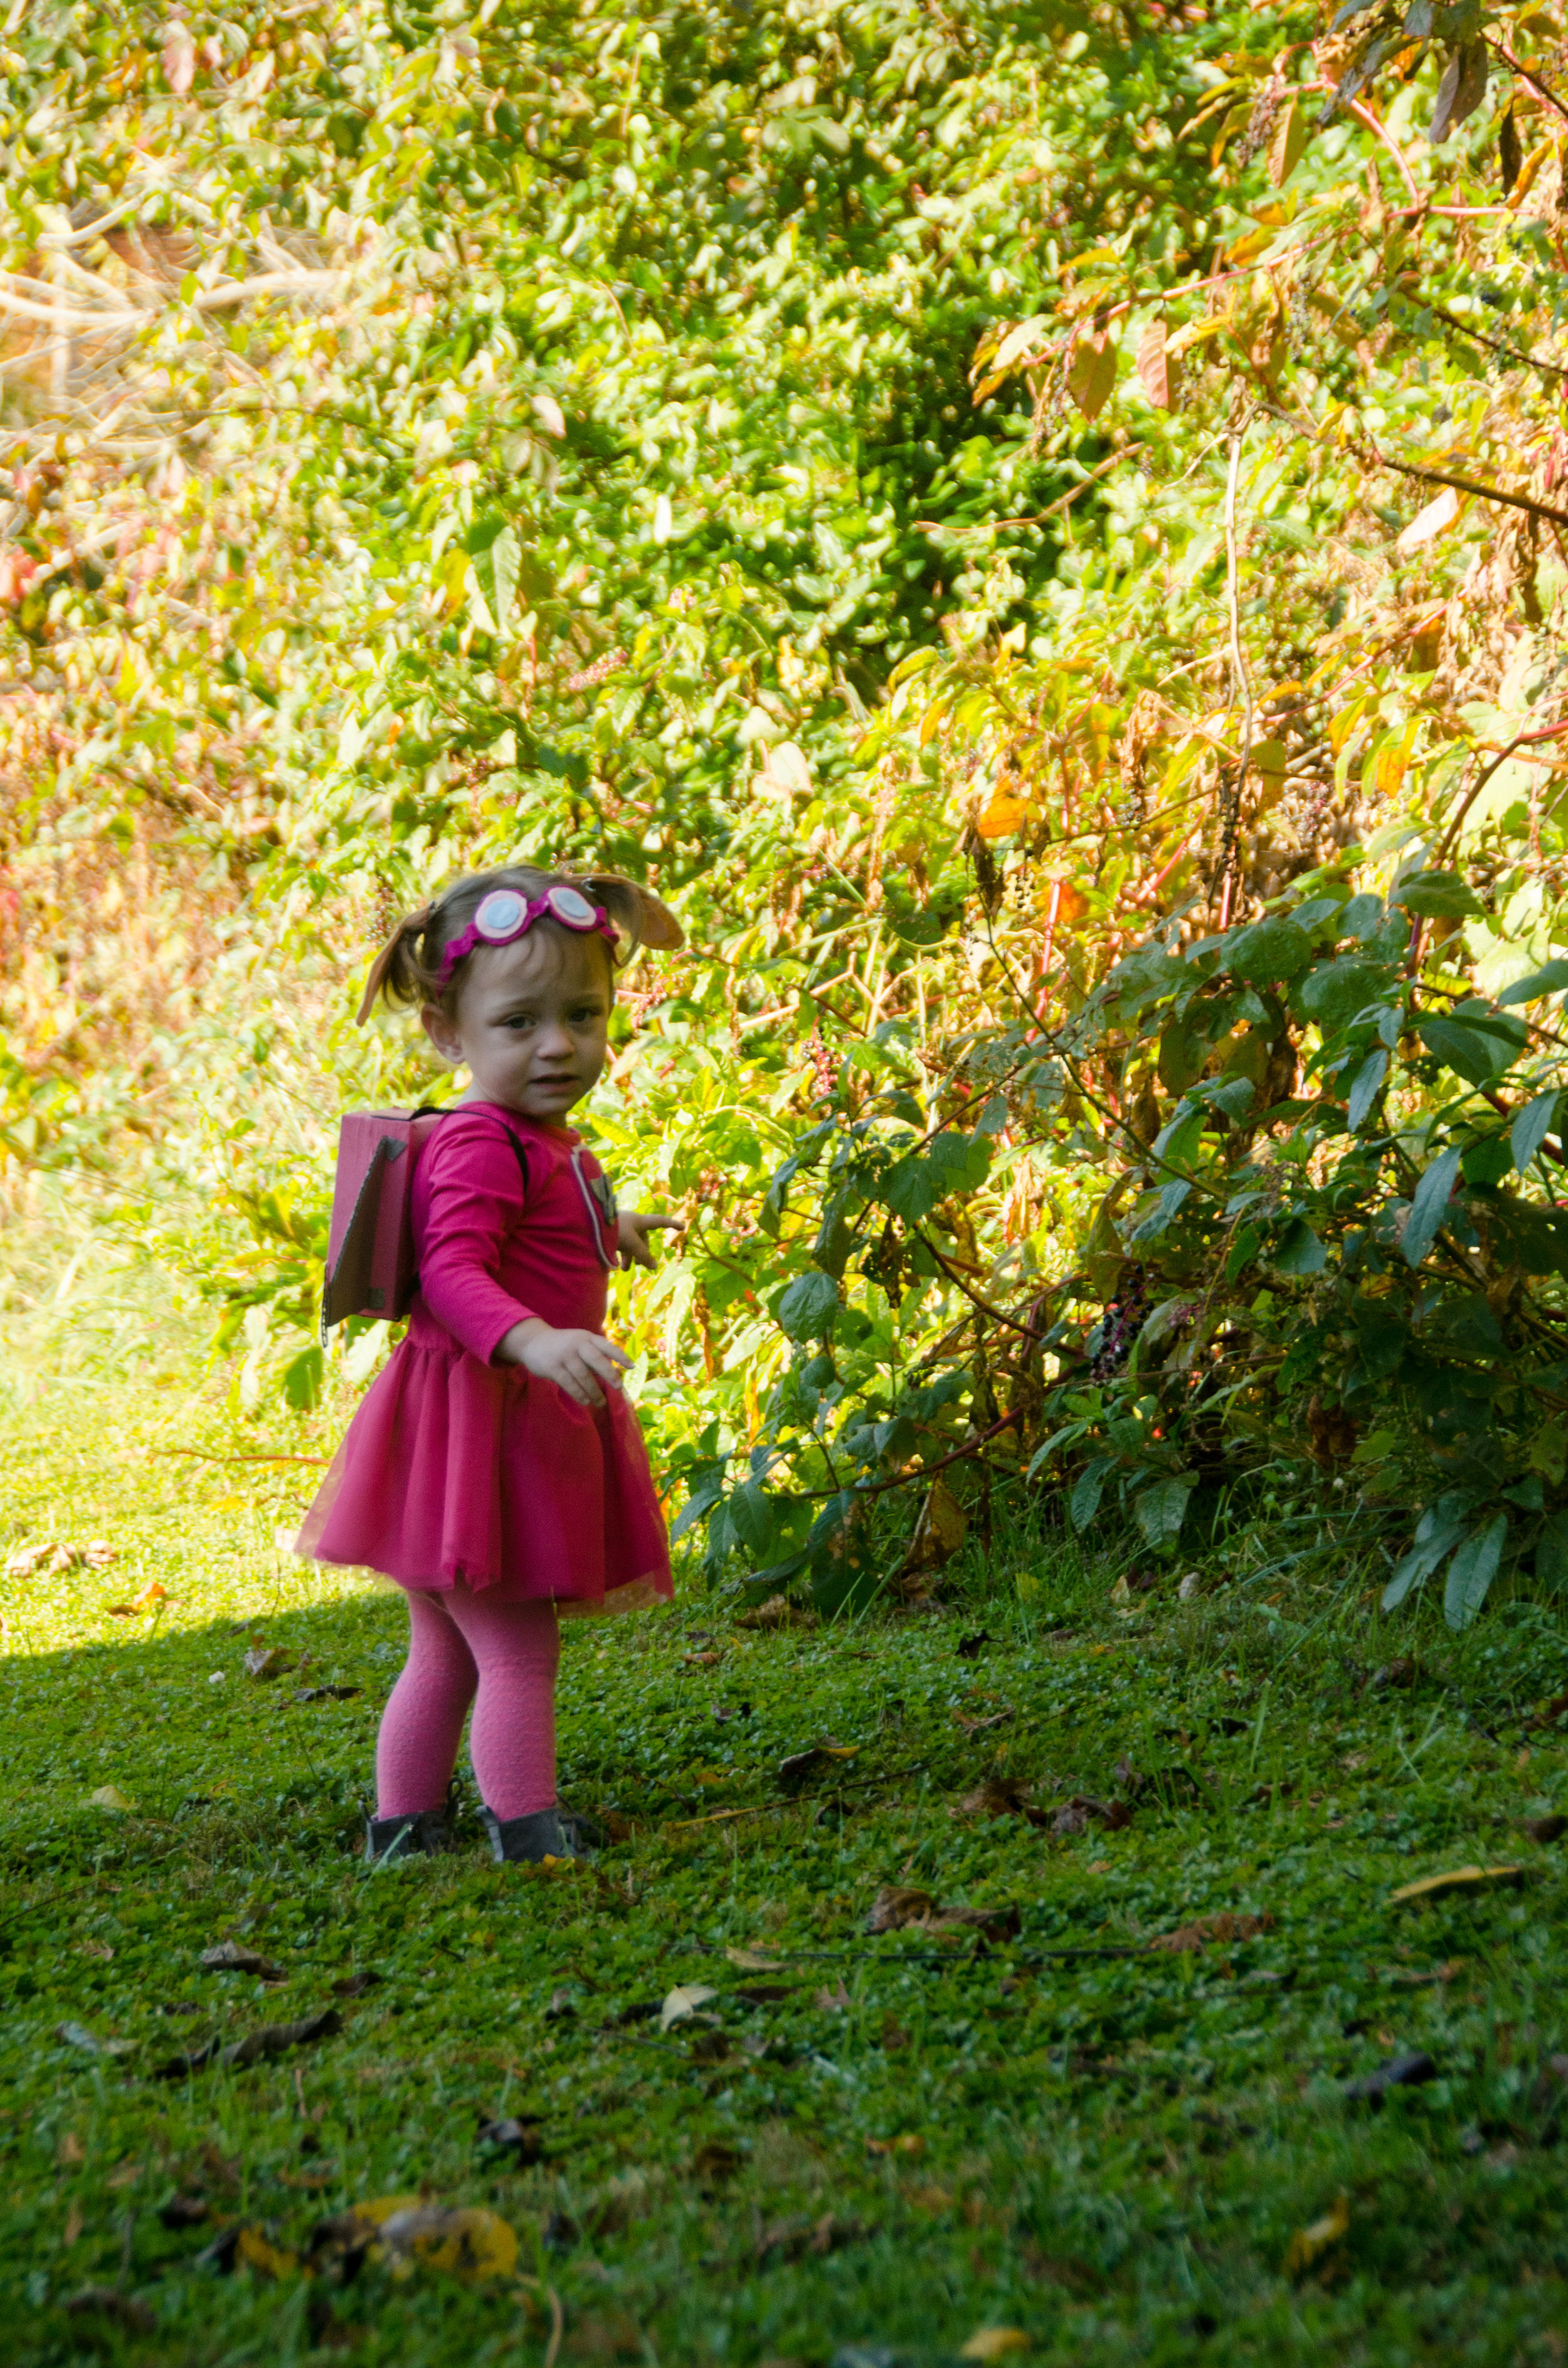 addie belle - 2 years old - october 2017 - shegotguts.com-5.jpg